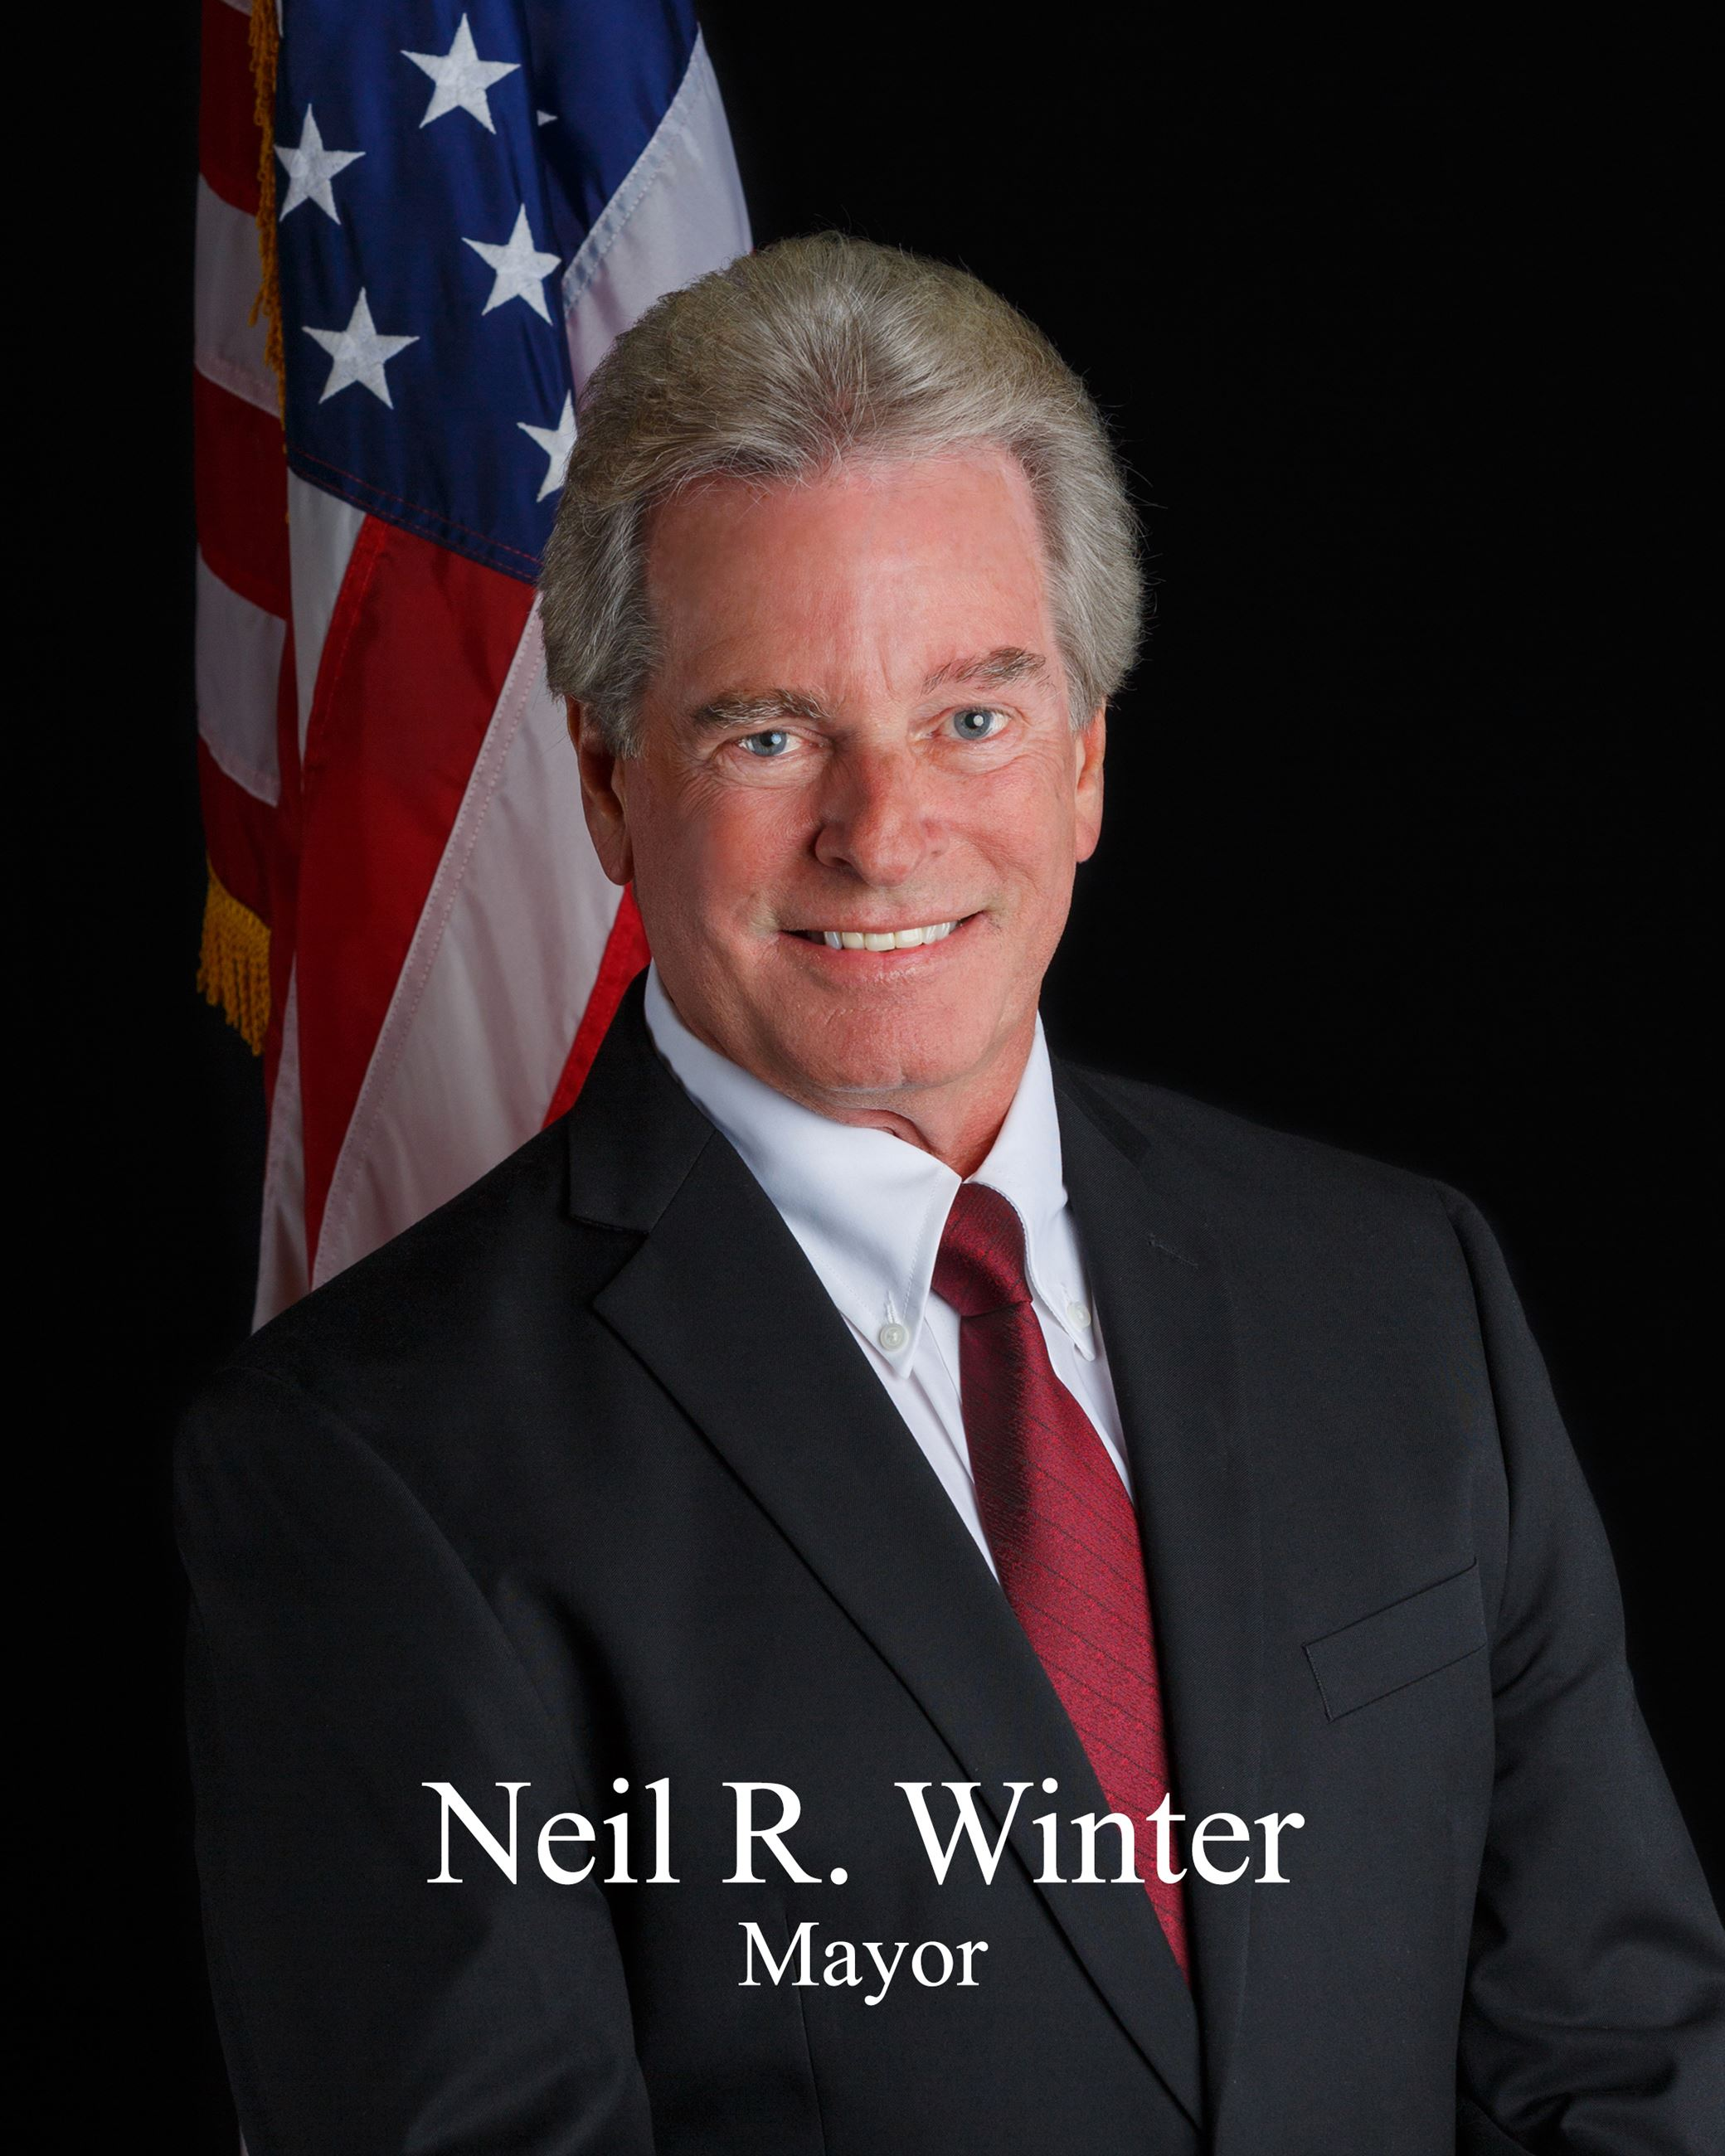 Neil R. Winter